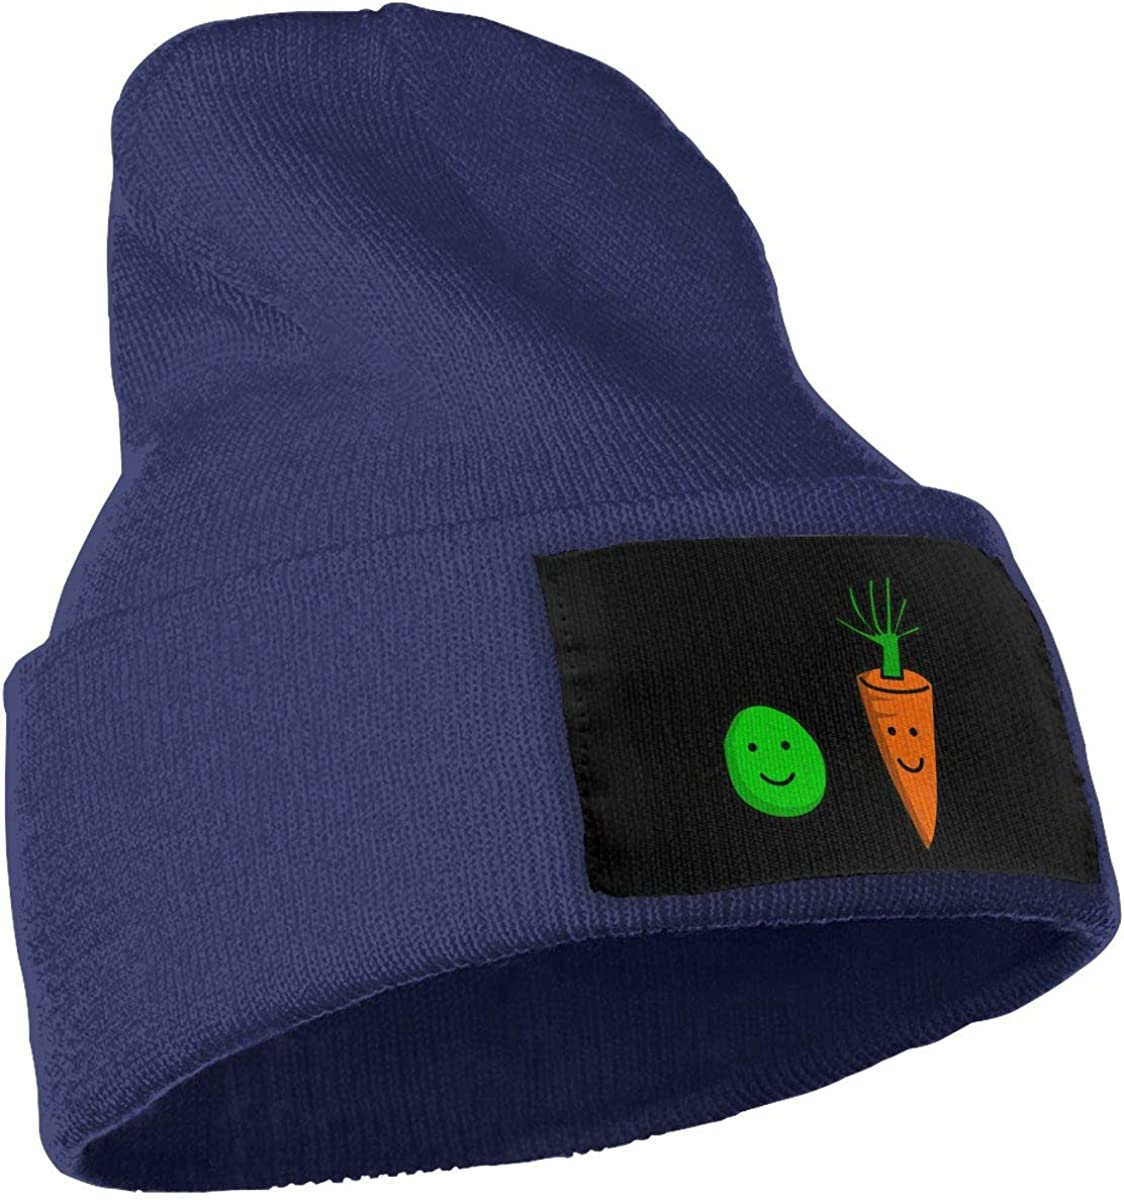 COLLJL-8 Unisex Peas N Carrots Outdoor Warm Knit Beanies Hat Soft Winter Knit Caps